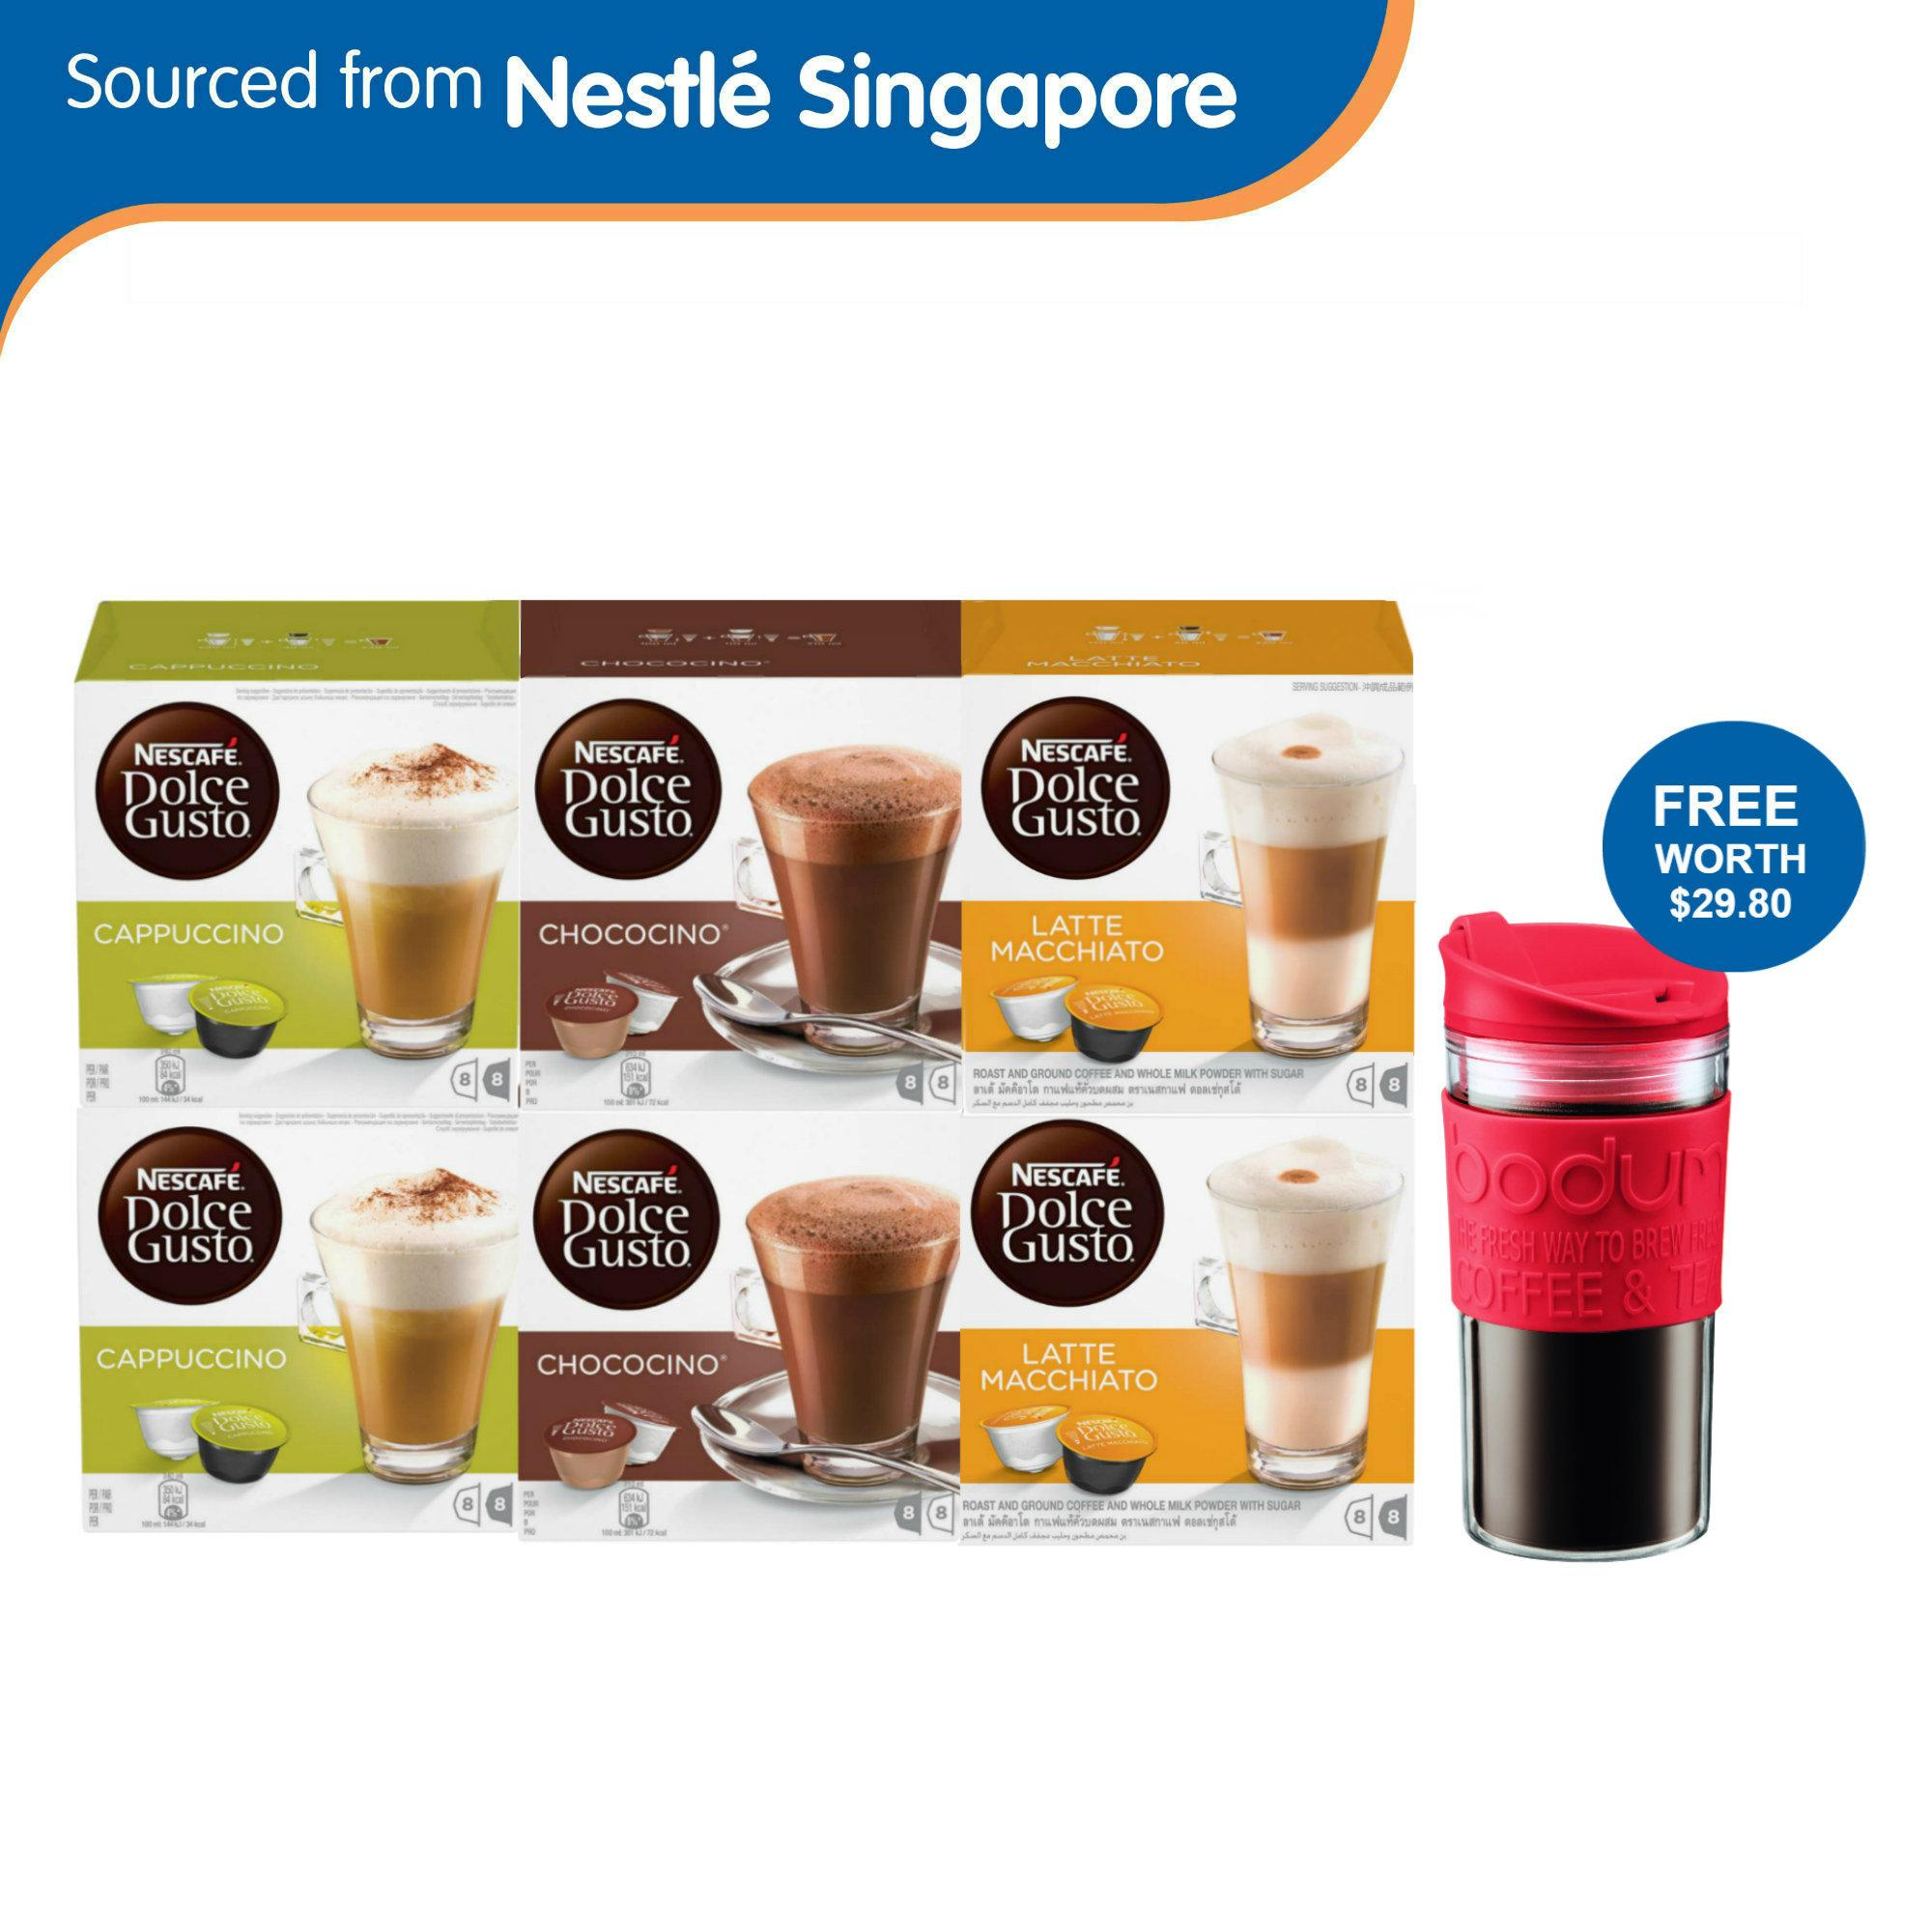 (6 Box Bundle) Nescafe Dolce Gusto White Cup Lovers Capsules + Free Bodum Travel Mug (worth $29.80) By Nestle Official Store.